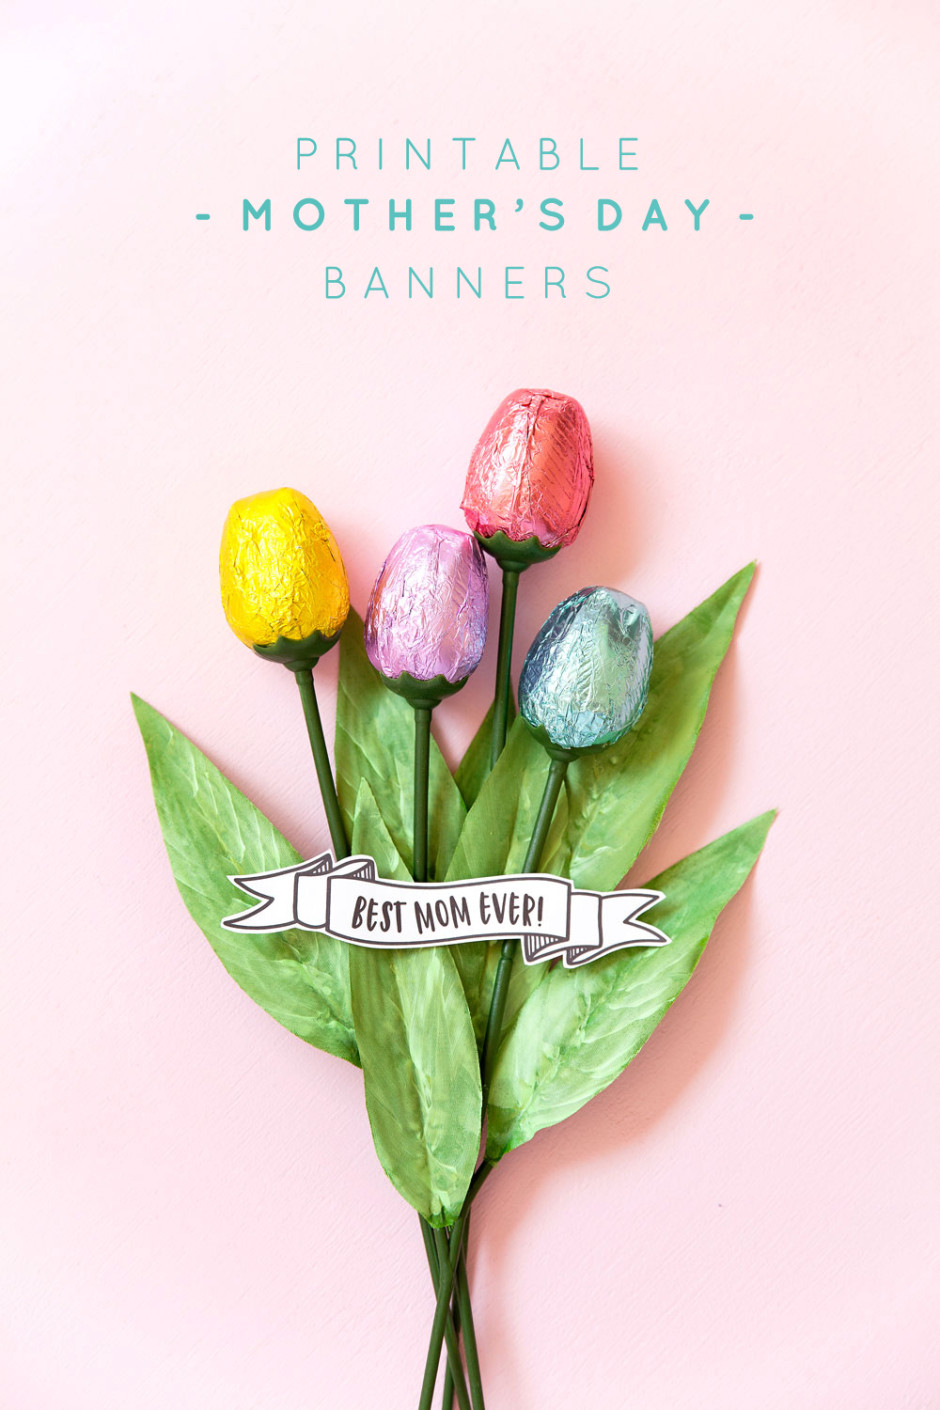 Chocolate-flowers-and-free-printable-banners-for-the-best-last-min-mothers-day-gift